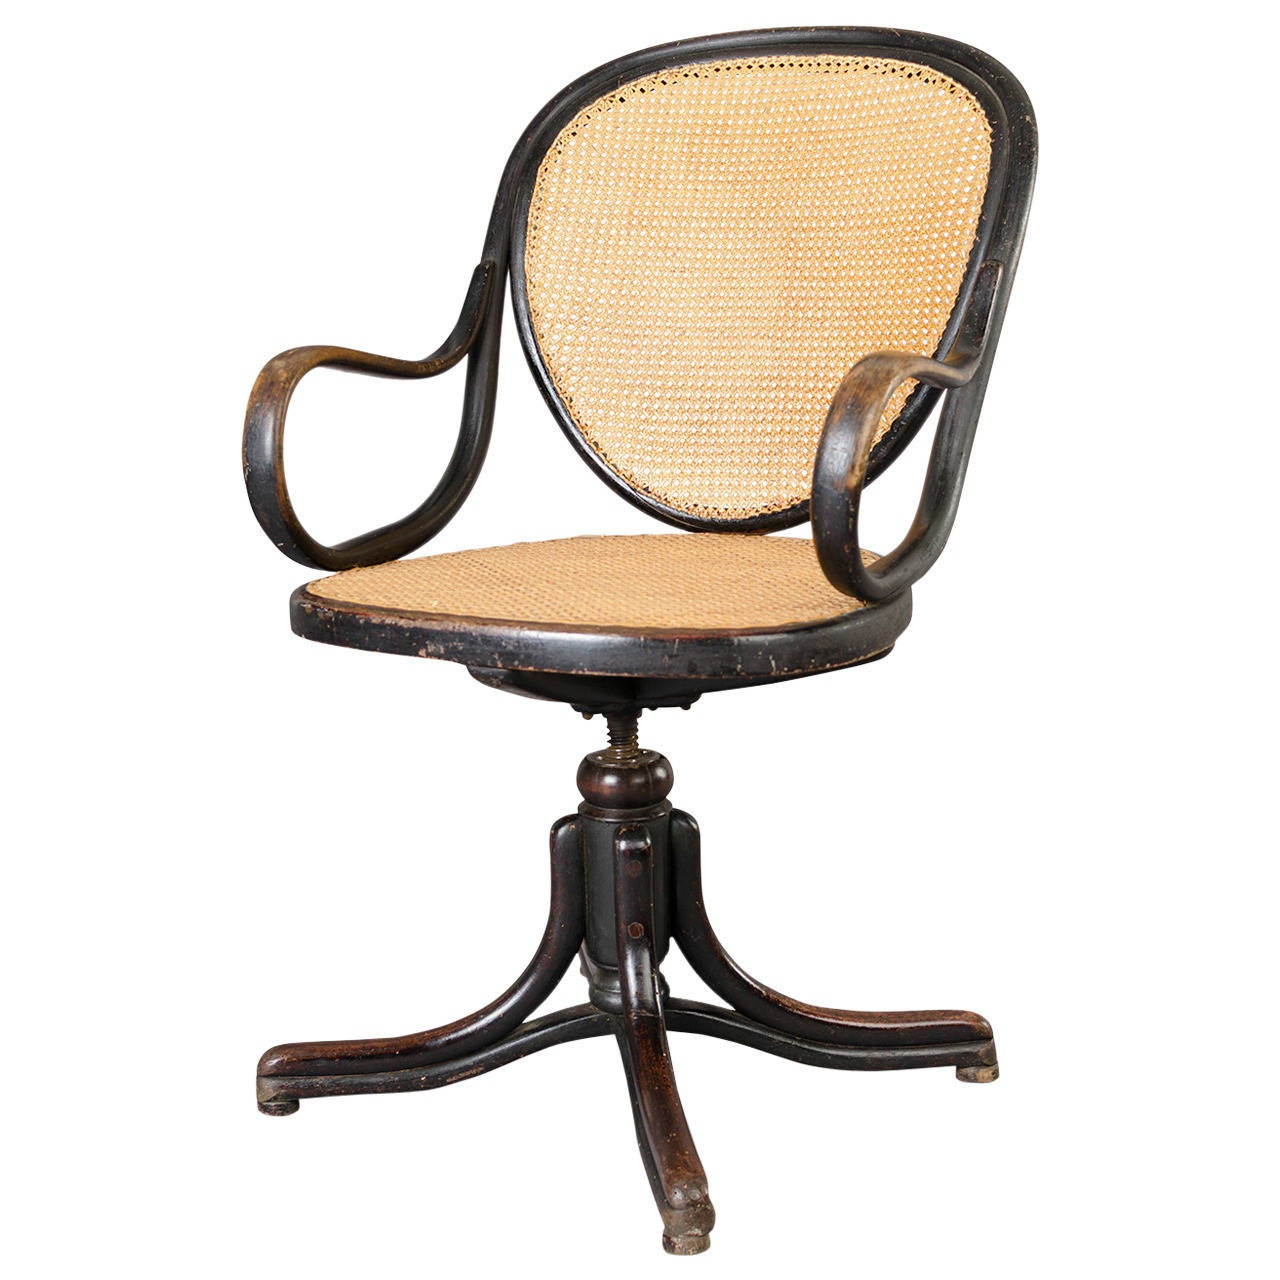 swivel office chair by gebr der thonet vienna at 1stdibs. Black Bedroom Furniture Sets. Home Design Ideas